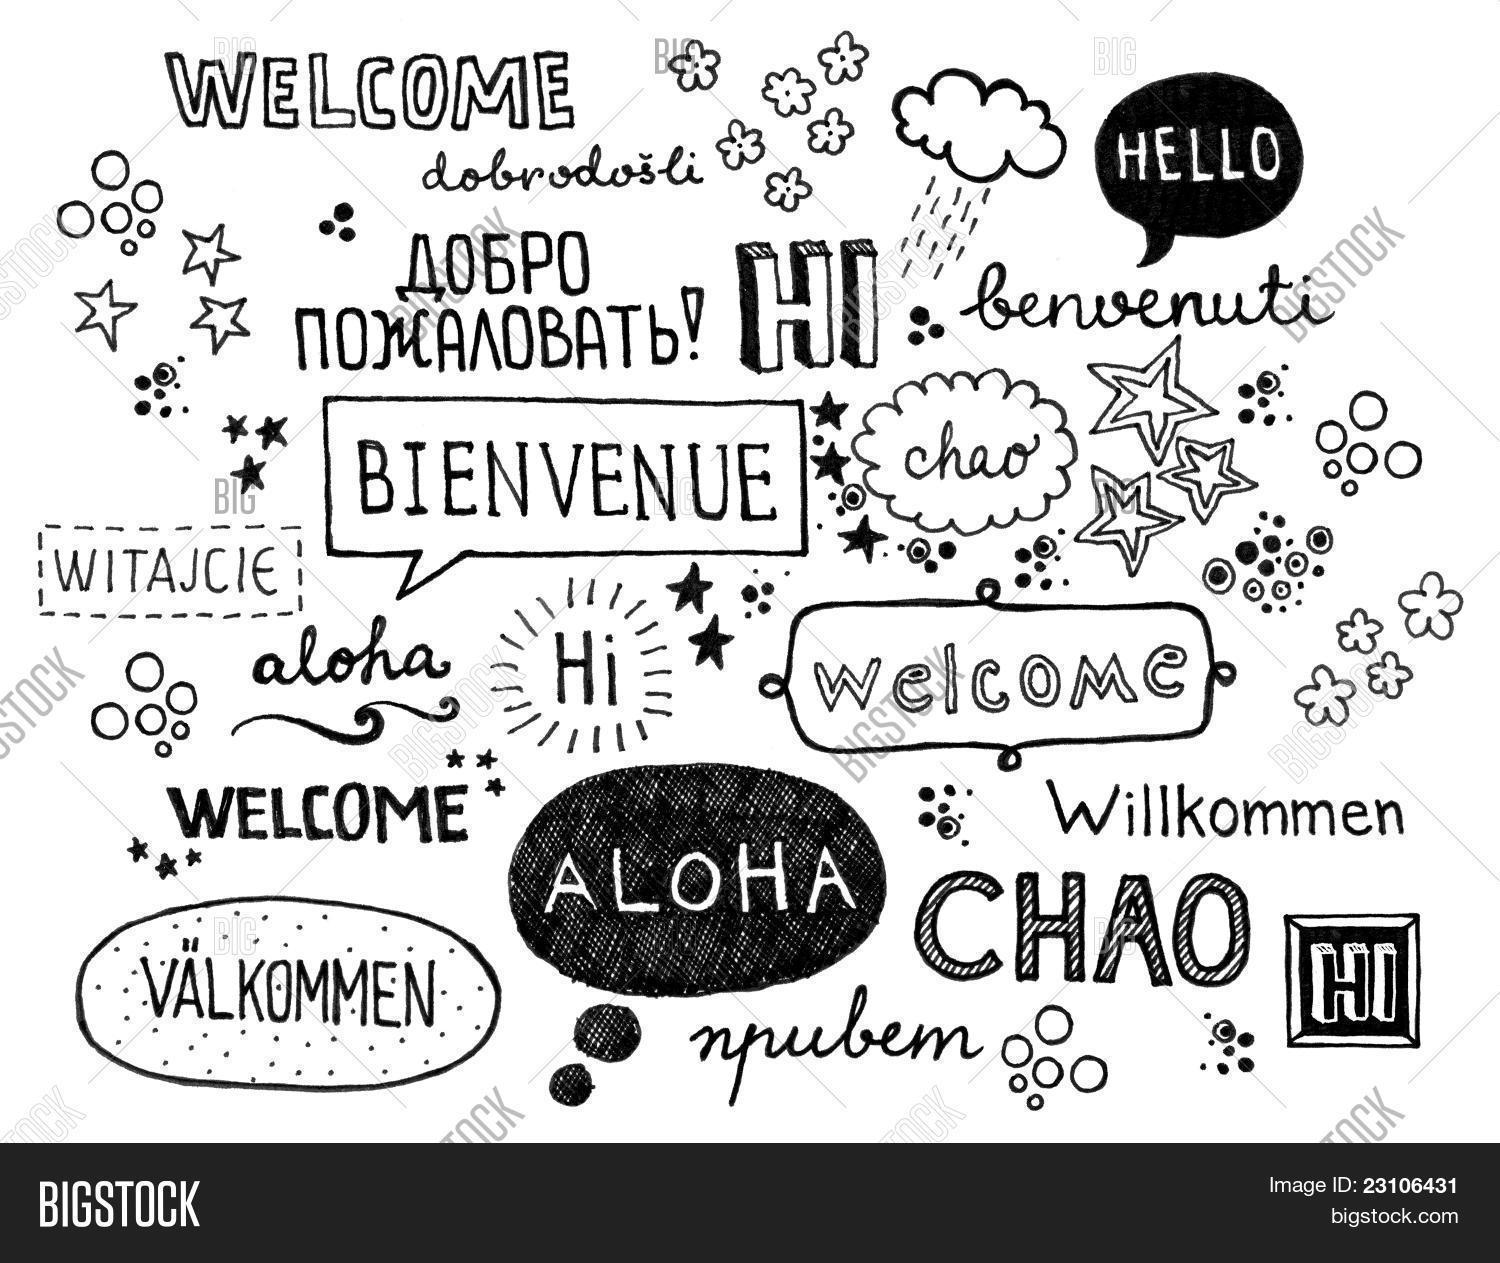 Word Welcome Written Image Photo Free Trial Bigstock